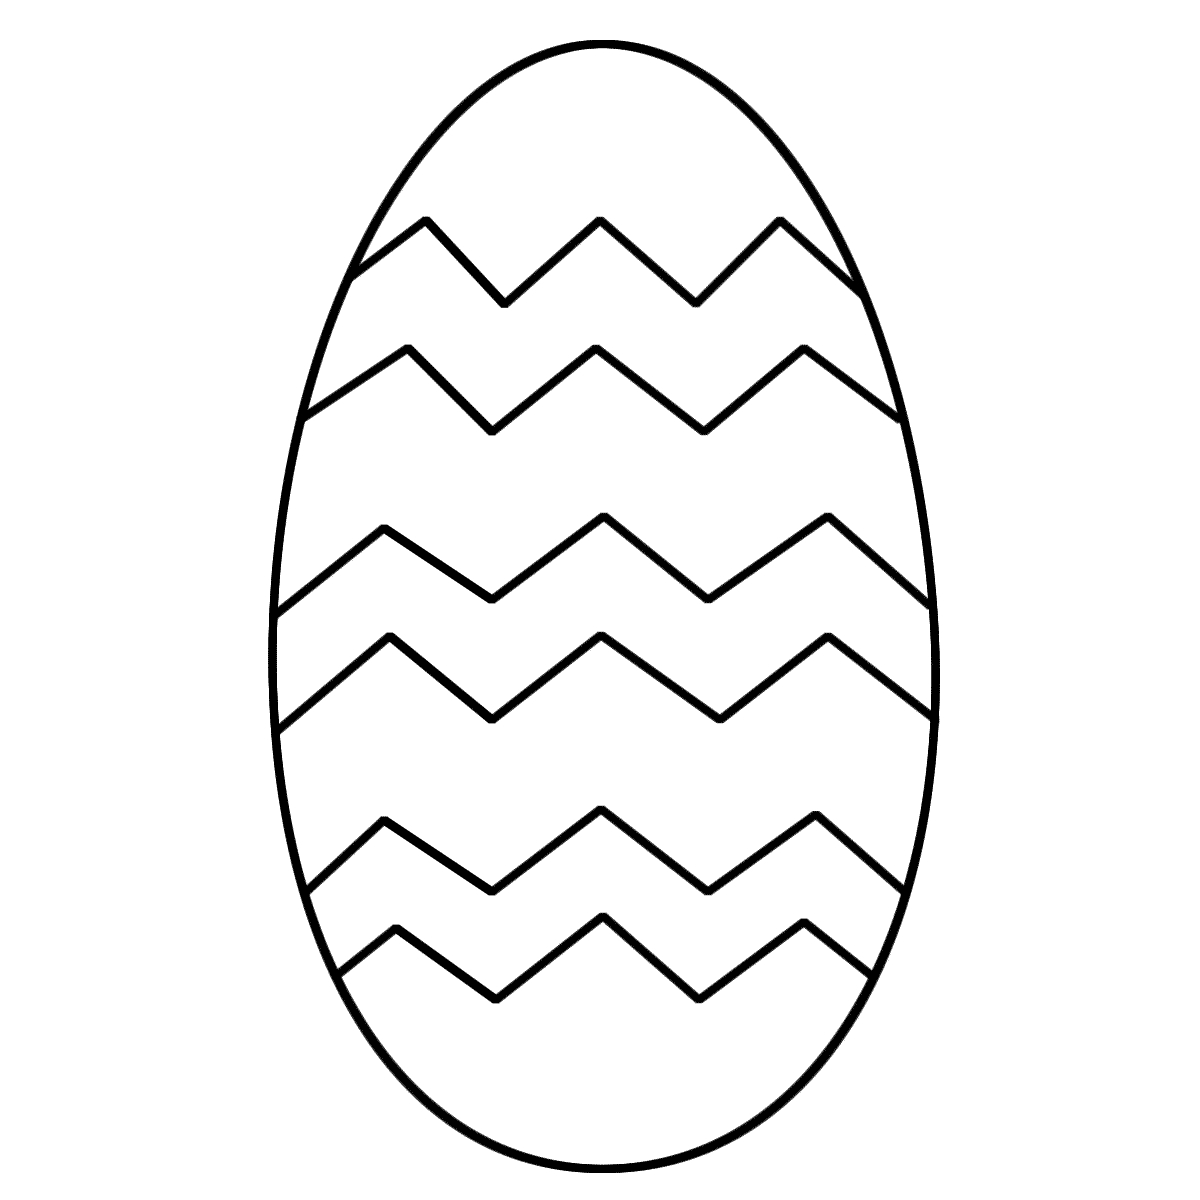 Free Easter Coloring Pages - Free Printable Easter Egg Coloring Pages Clipart Best